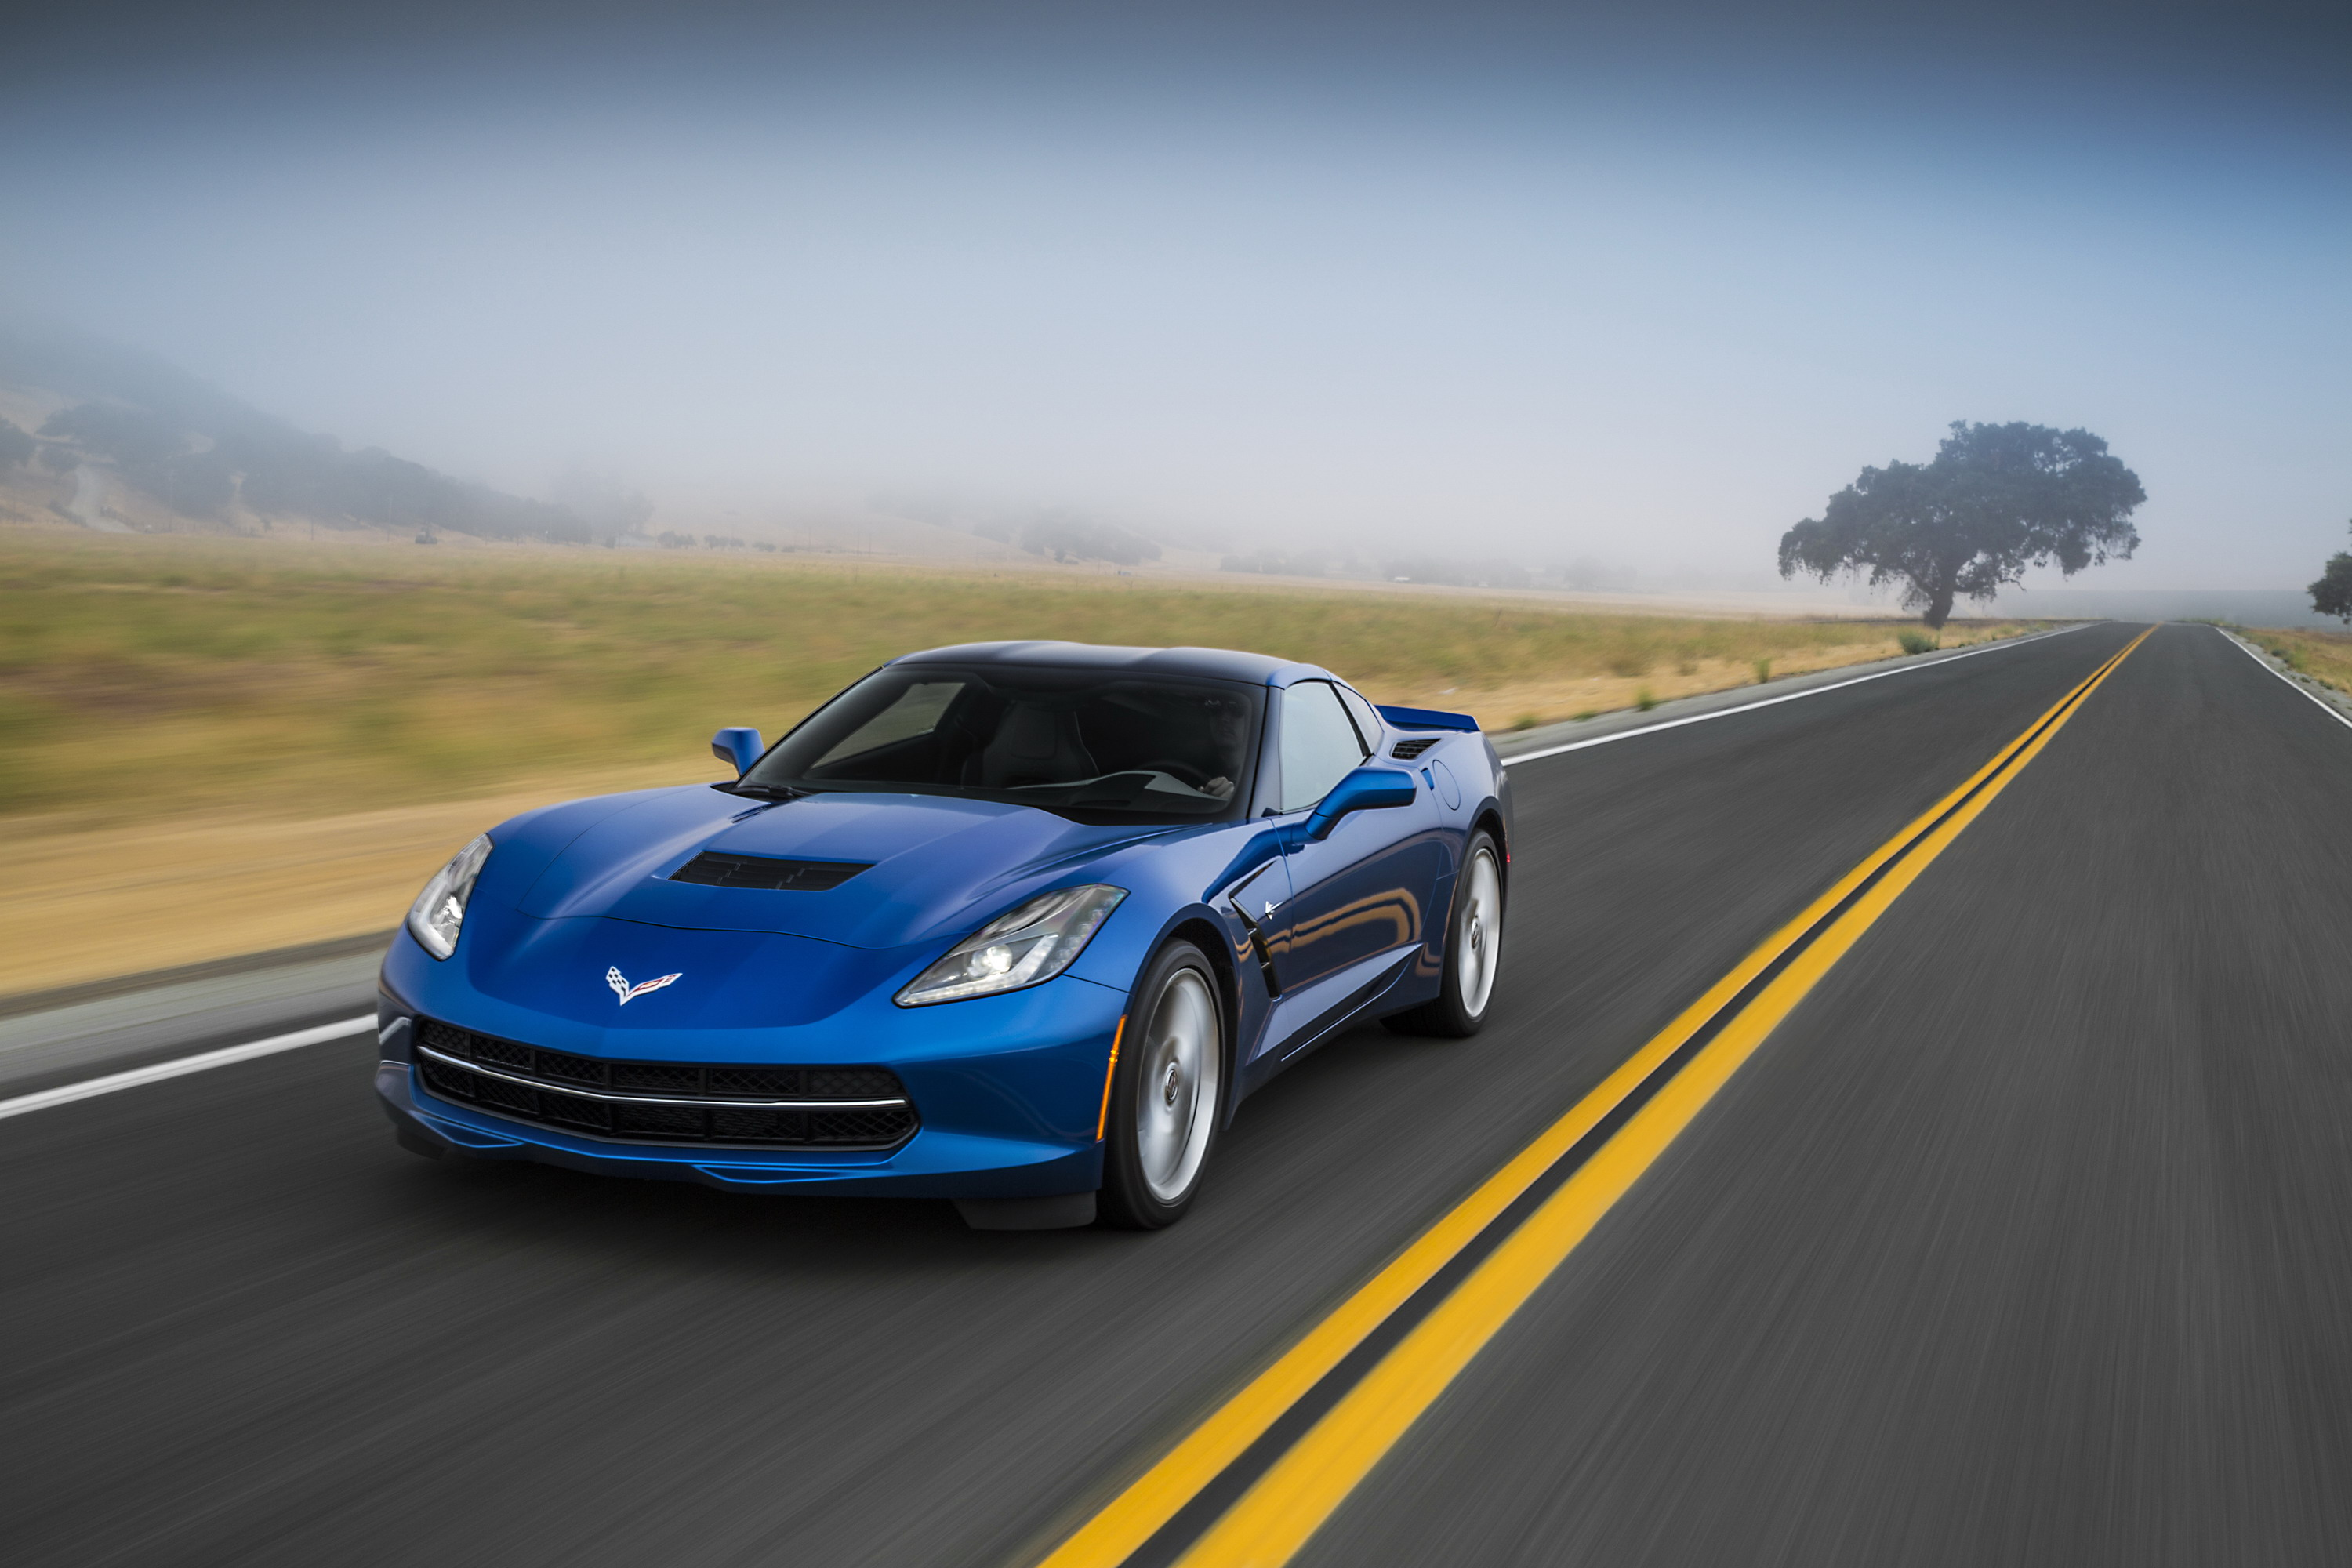 Chevrolet Corvette Reviews, Specs, Prices, Photos And Videos | Top Speed. »